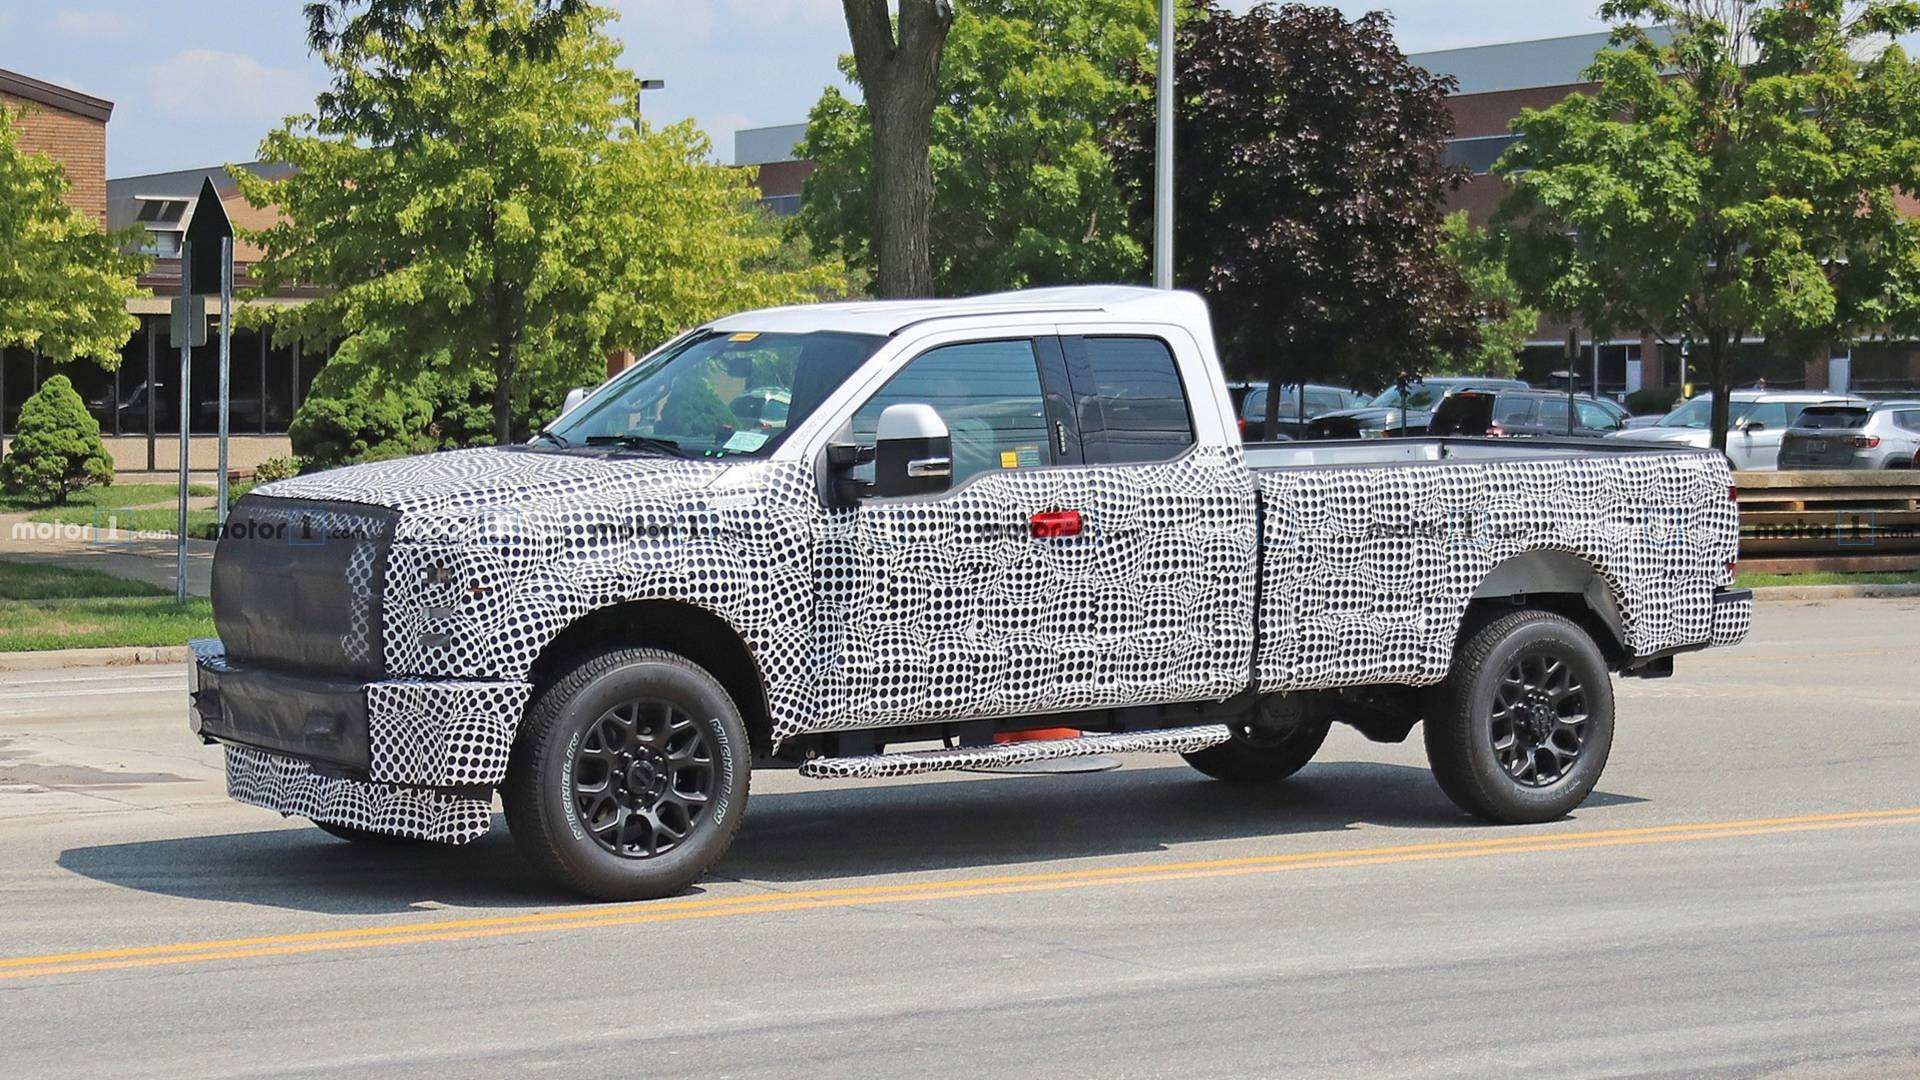 39 All New Spy Shots 2020 Ford F350 Diesel Rumors with Spy Shots 2020 Ford F350 Diesel